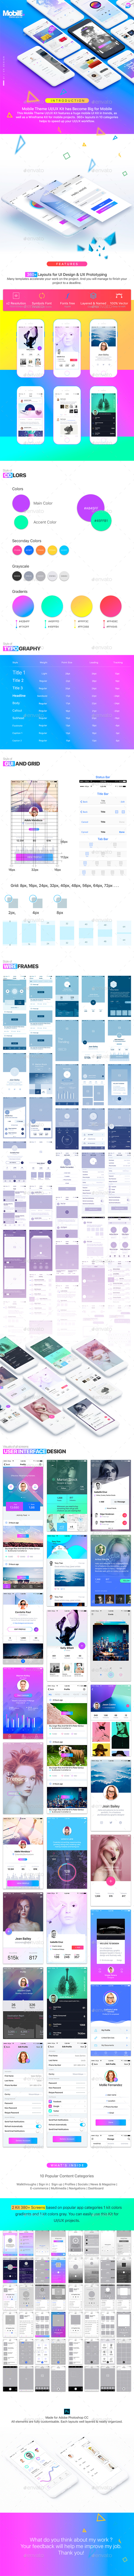 Flatimus iOS Free UI Kit